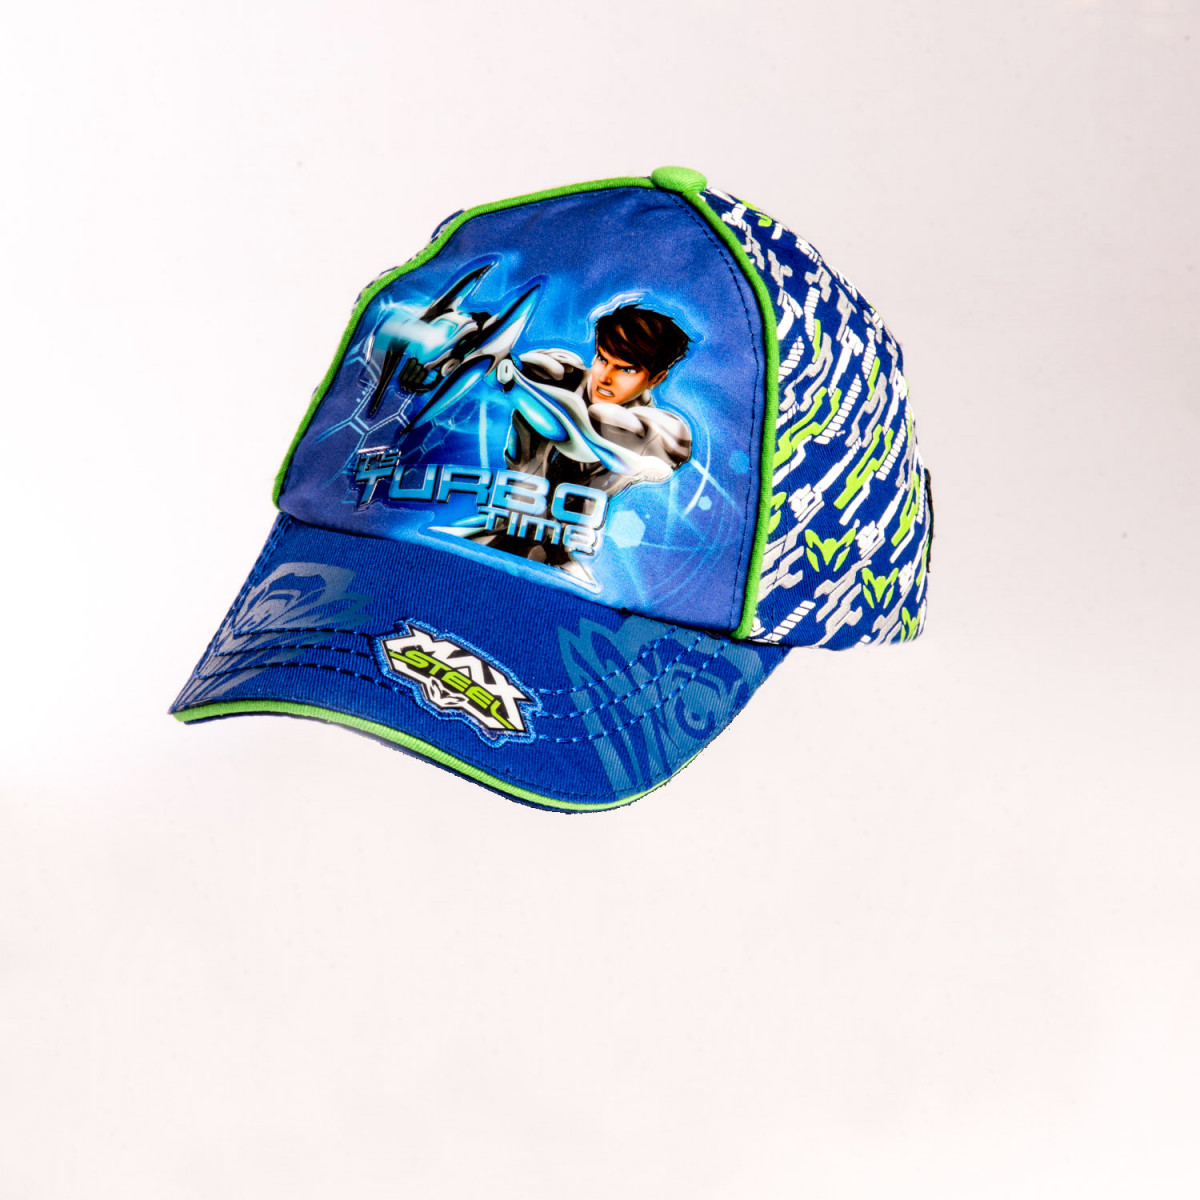 GORRA FOOTY MAX STEEL TURBO